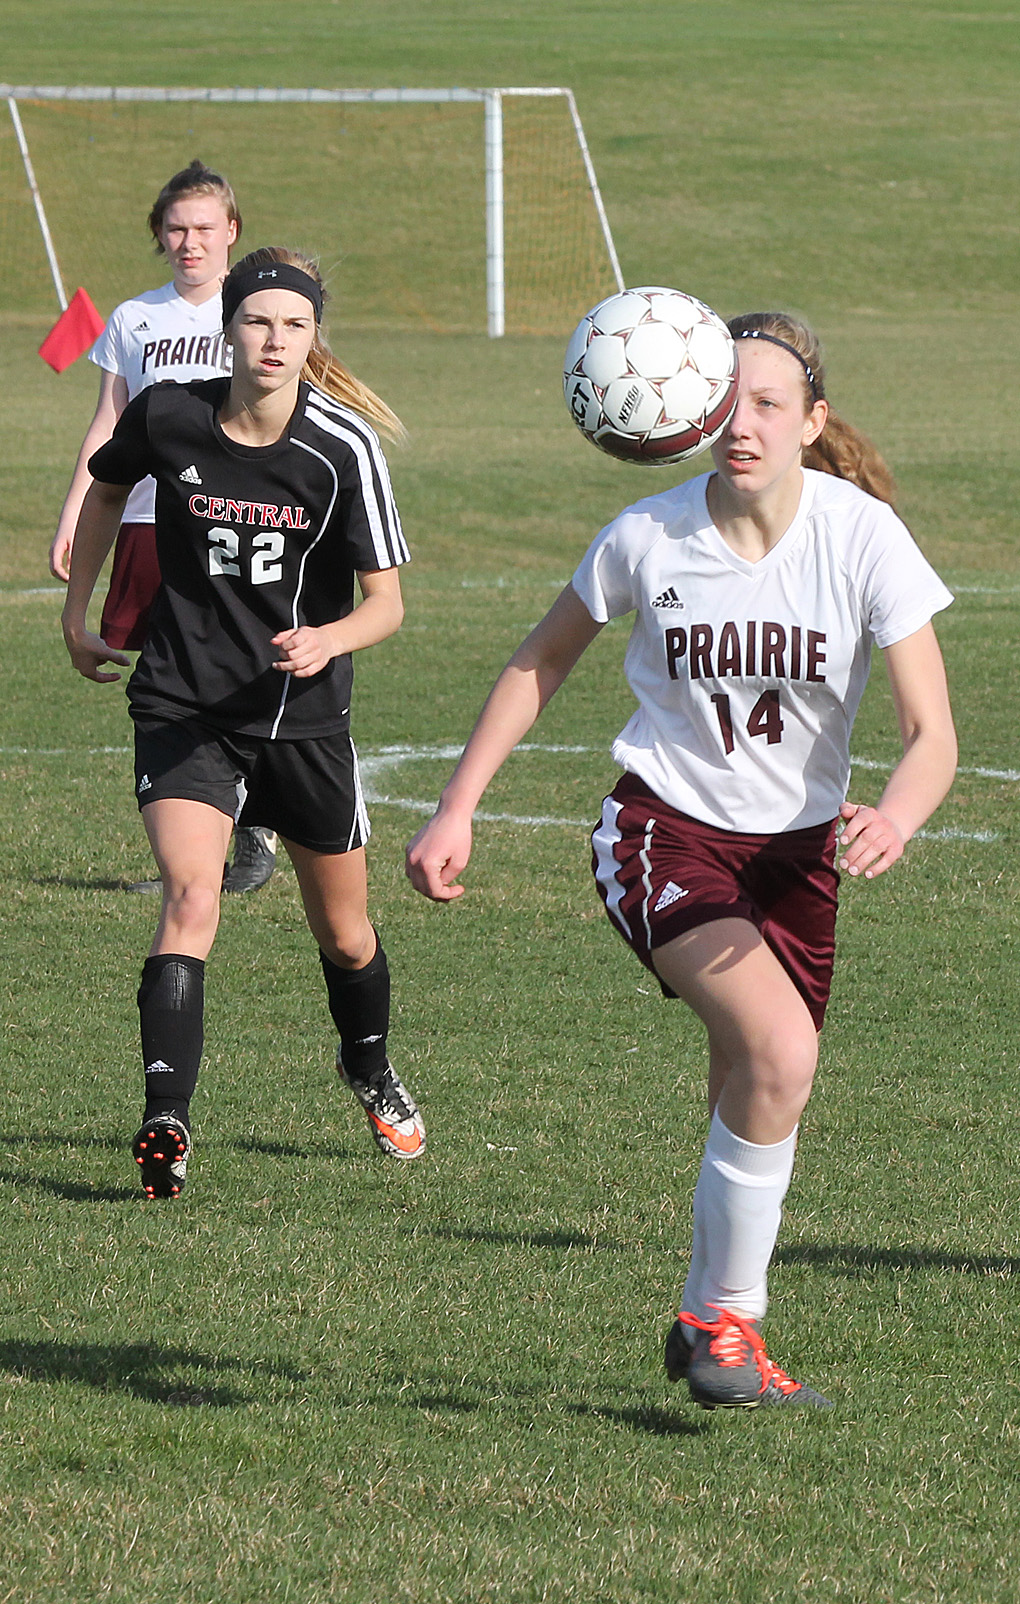 prairie girls Follow the startribune for the news, photos and videos from the twin cities and beyond.